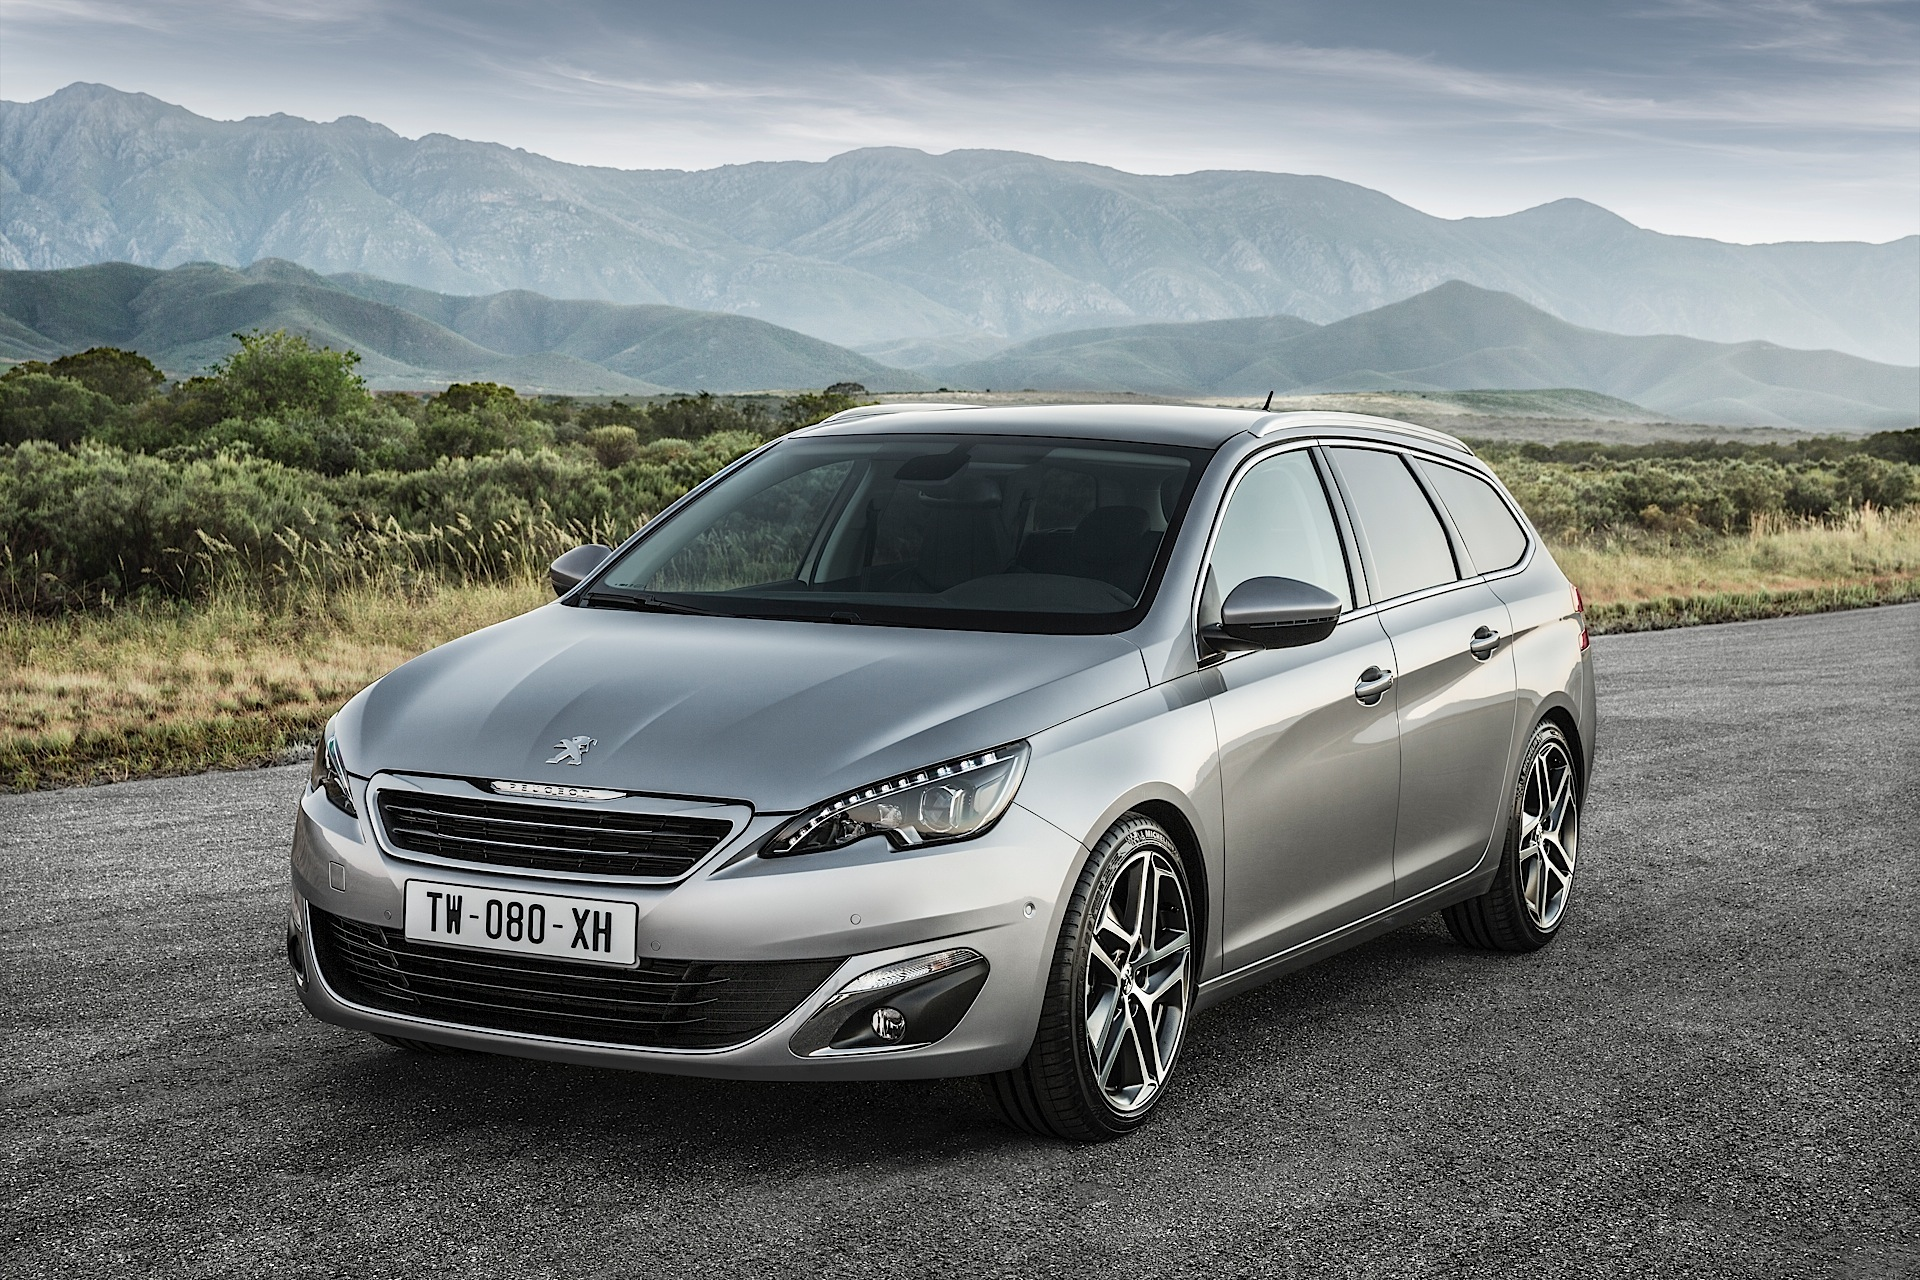 peugeot 308 sw specs photos 2014 2015 2016 2017 autoevolution. Black Bedroom Furniture Sets. Home Design Ideas